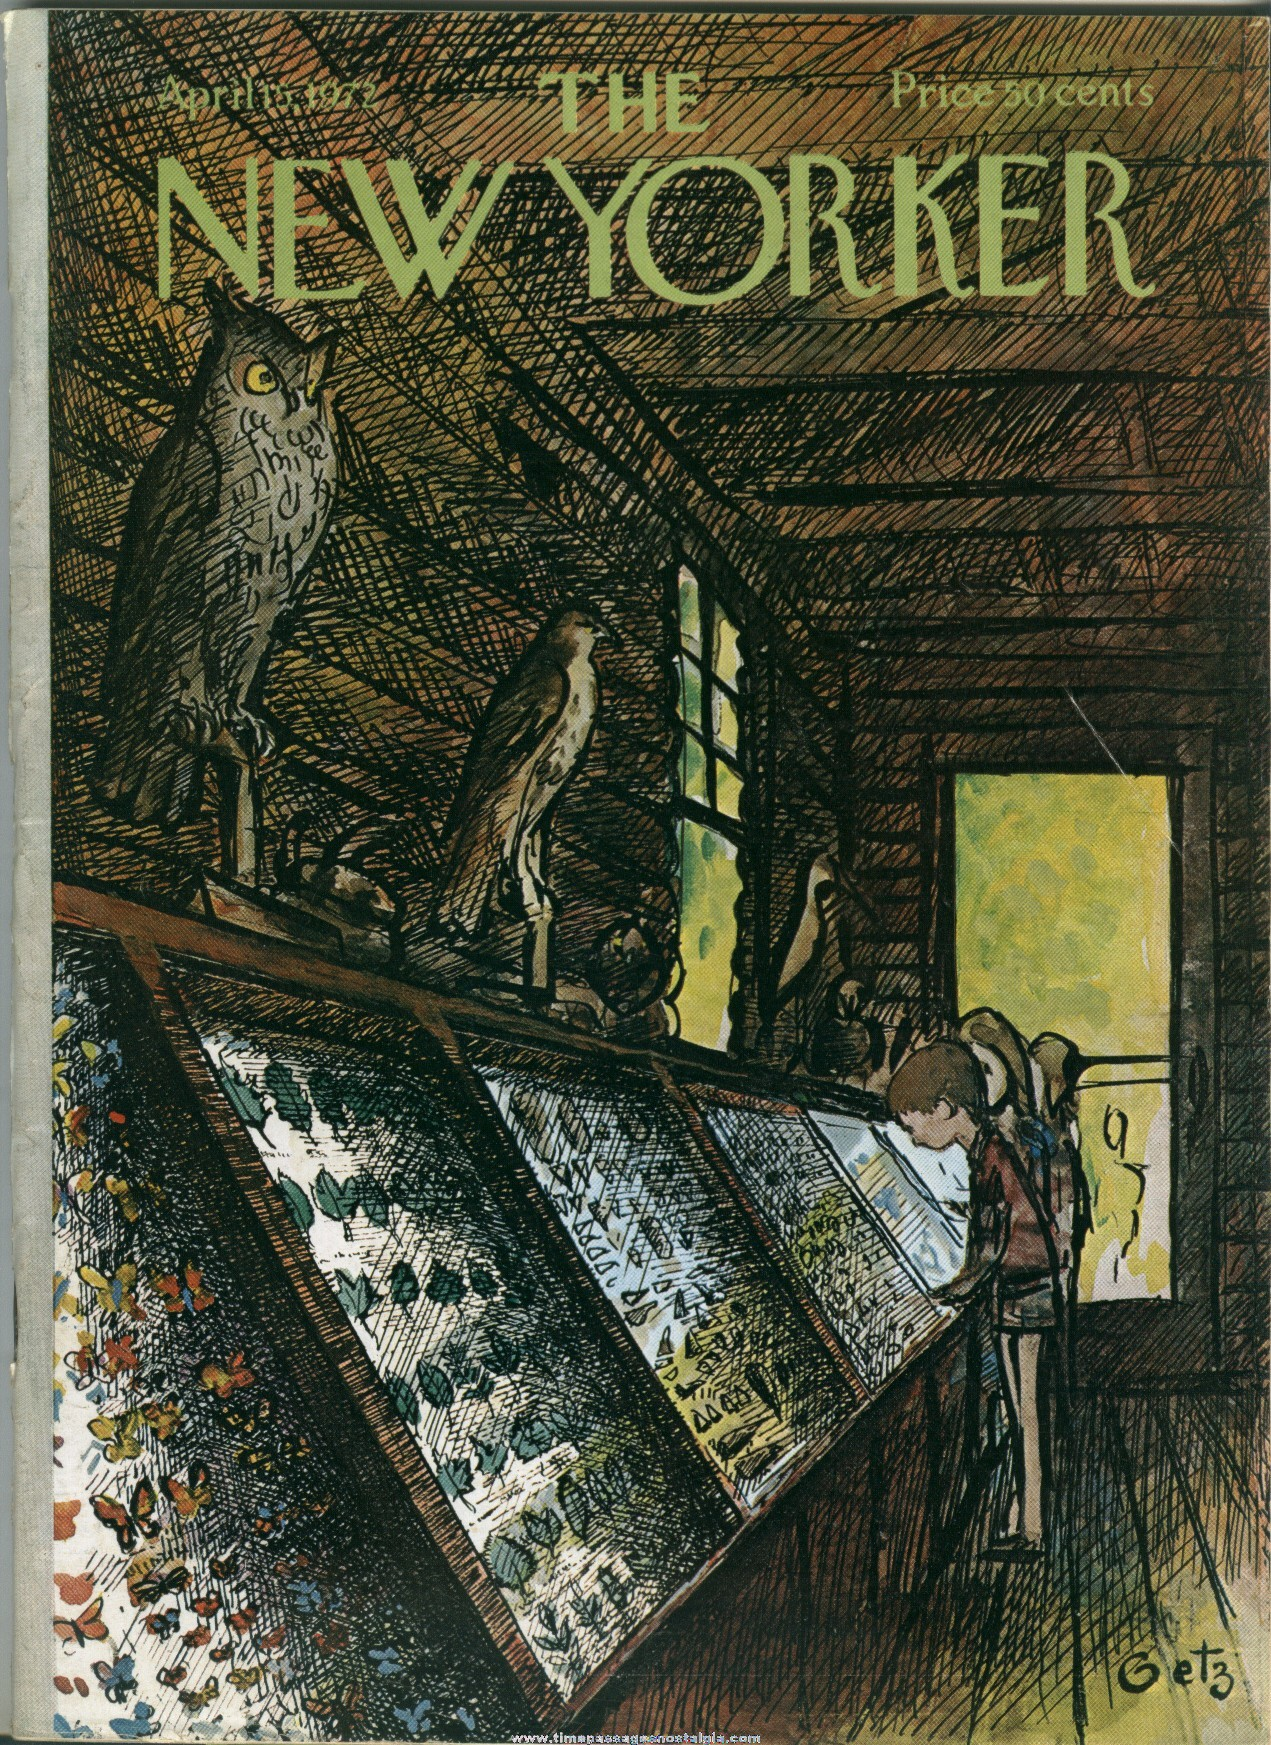 New Yorker Magazine - April 15, 1972 - Cover by Arthur Getz